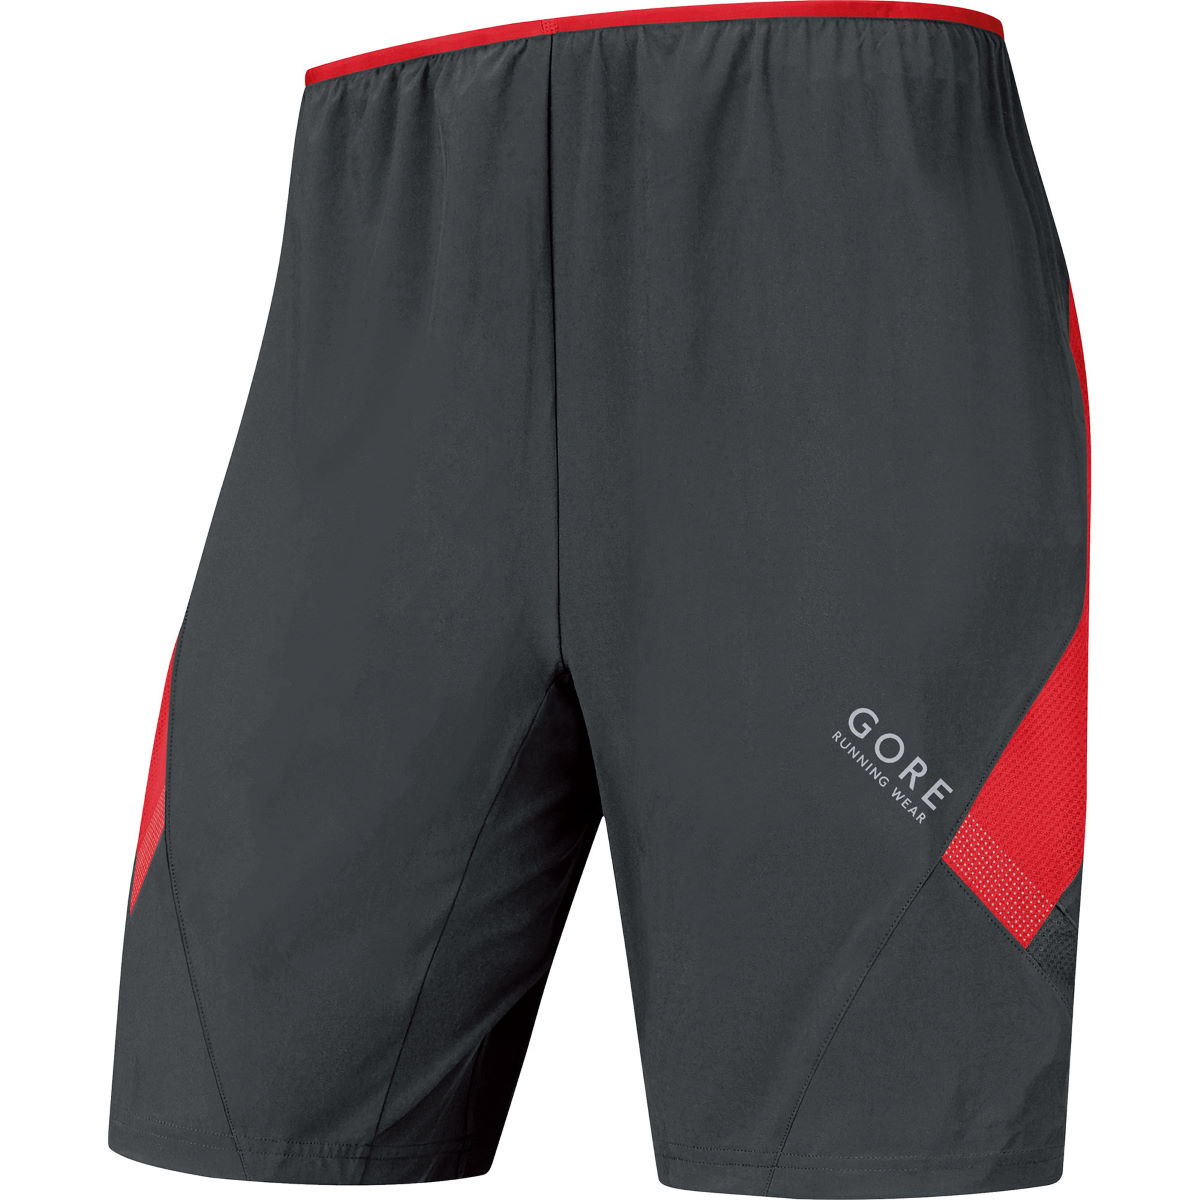 Short Gore Running Wear Air (2 en 1) - M black/red Shorts de running